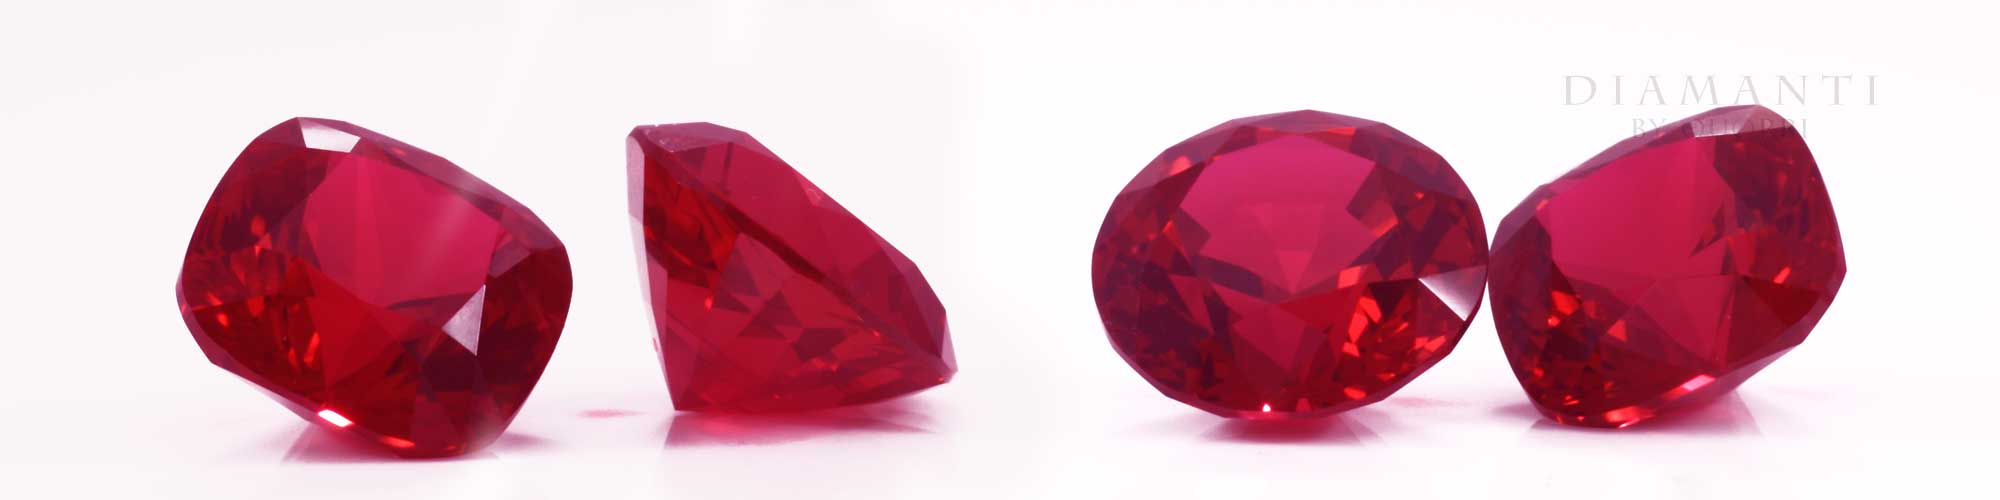 blood red ruby jewelry and gems at Quorri review Canada